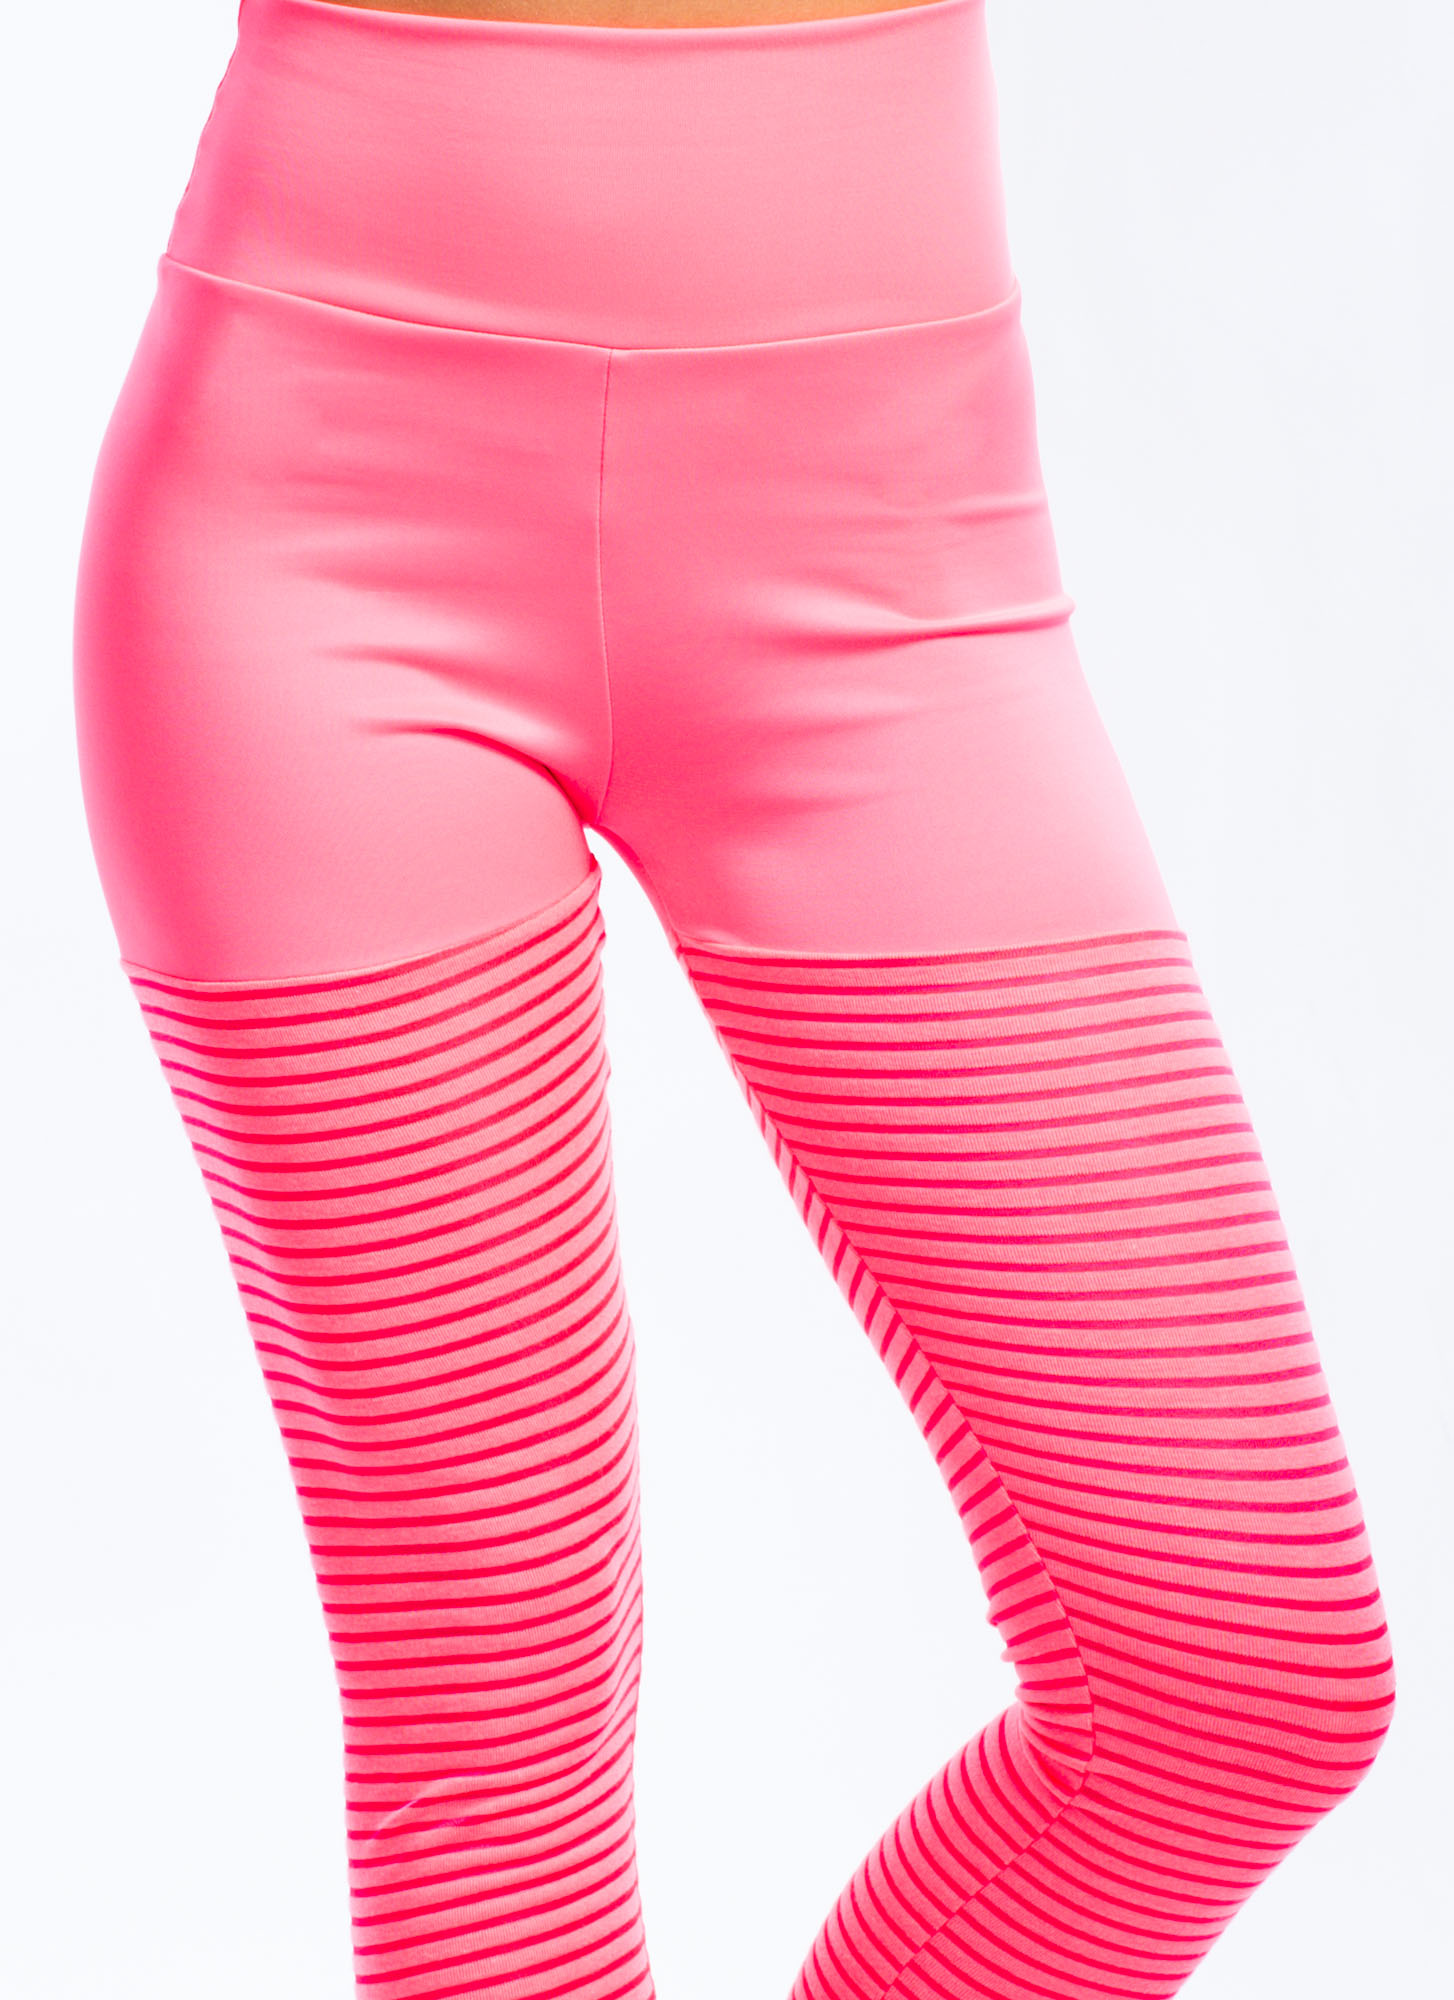 Sheer Thing Leggings NEONPINK (Final Sale)